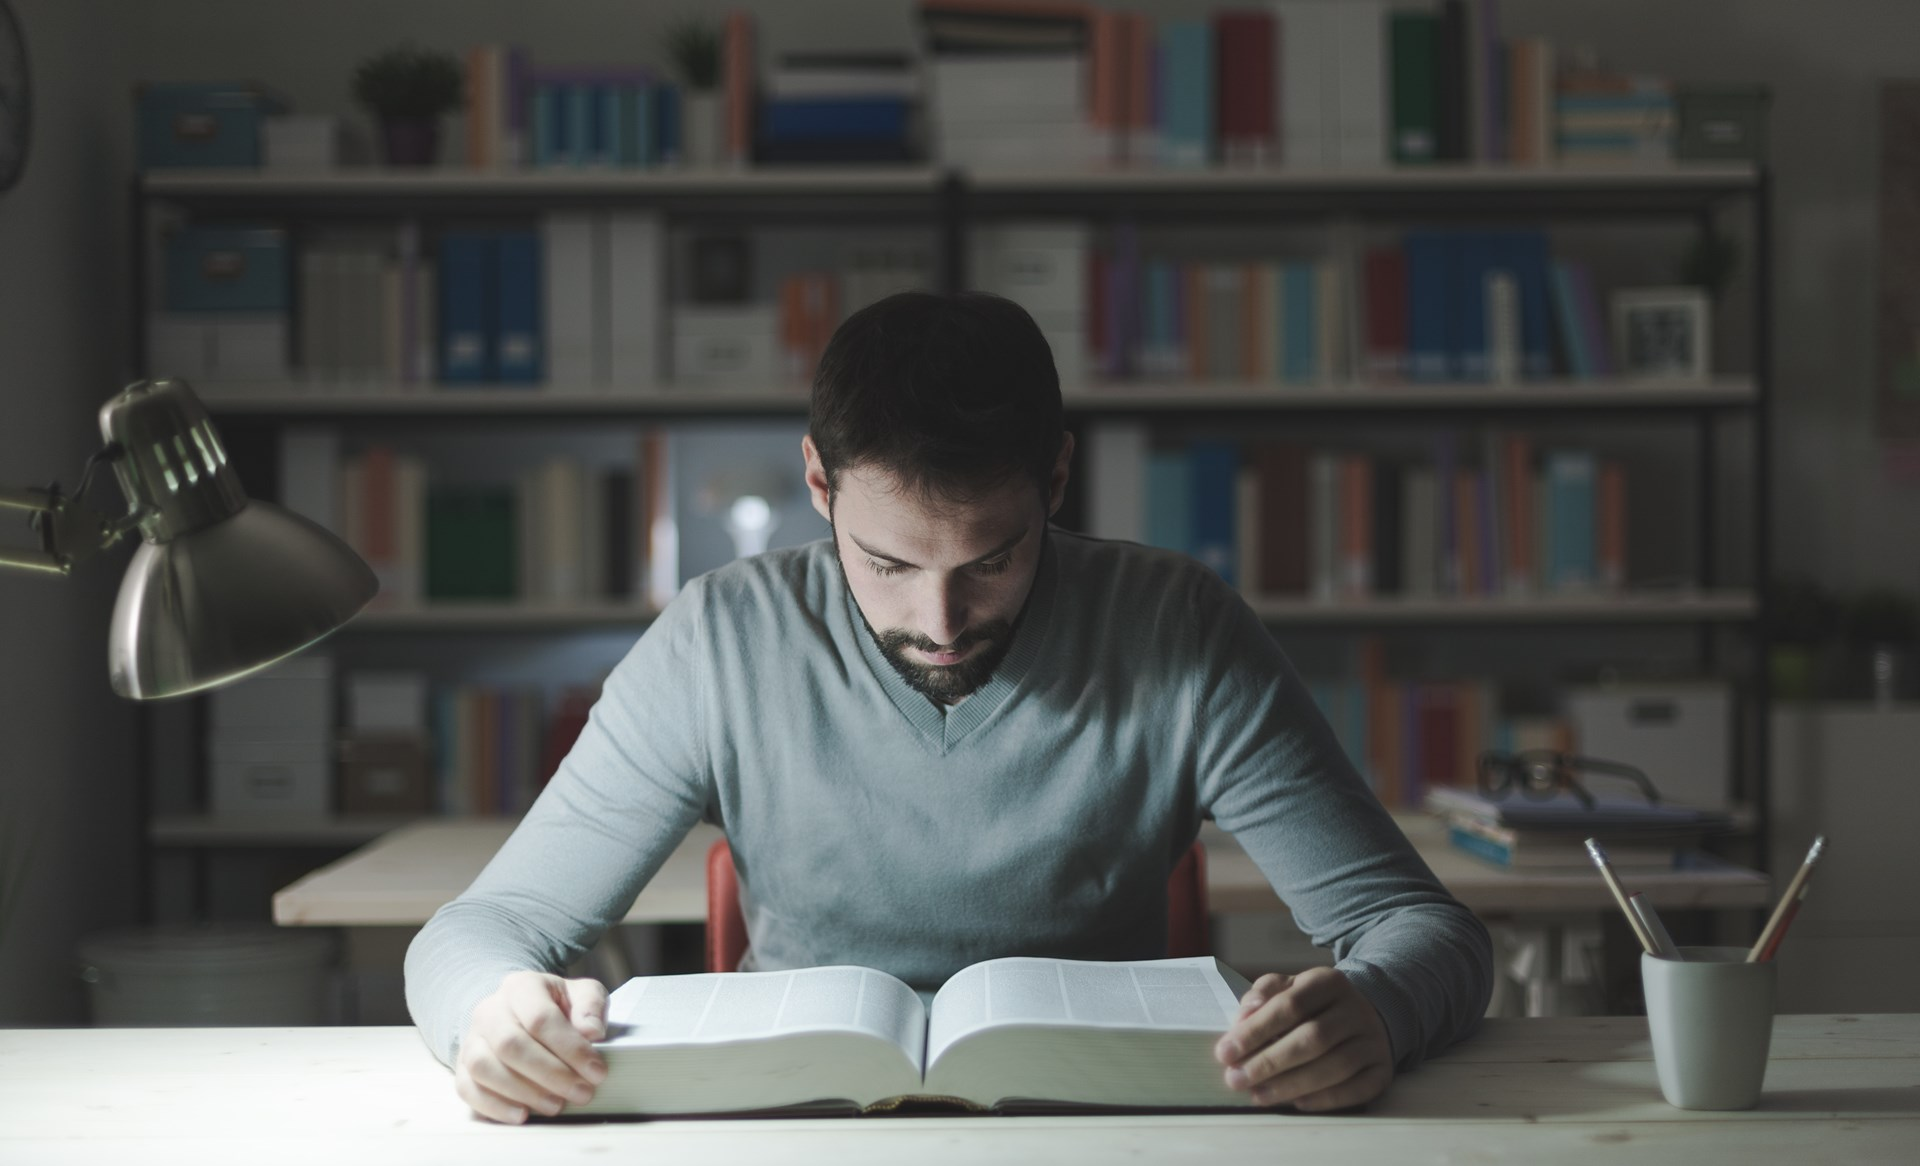 Image result for man reading a book in the study room